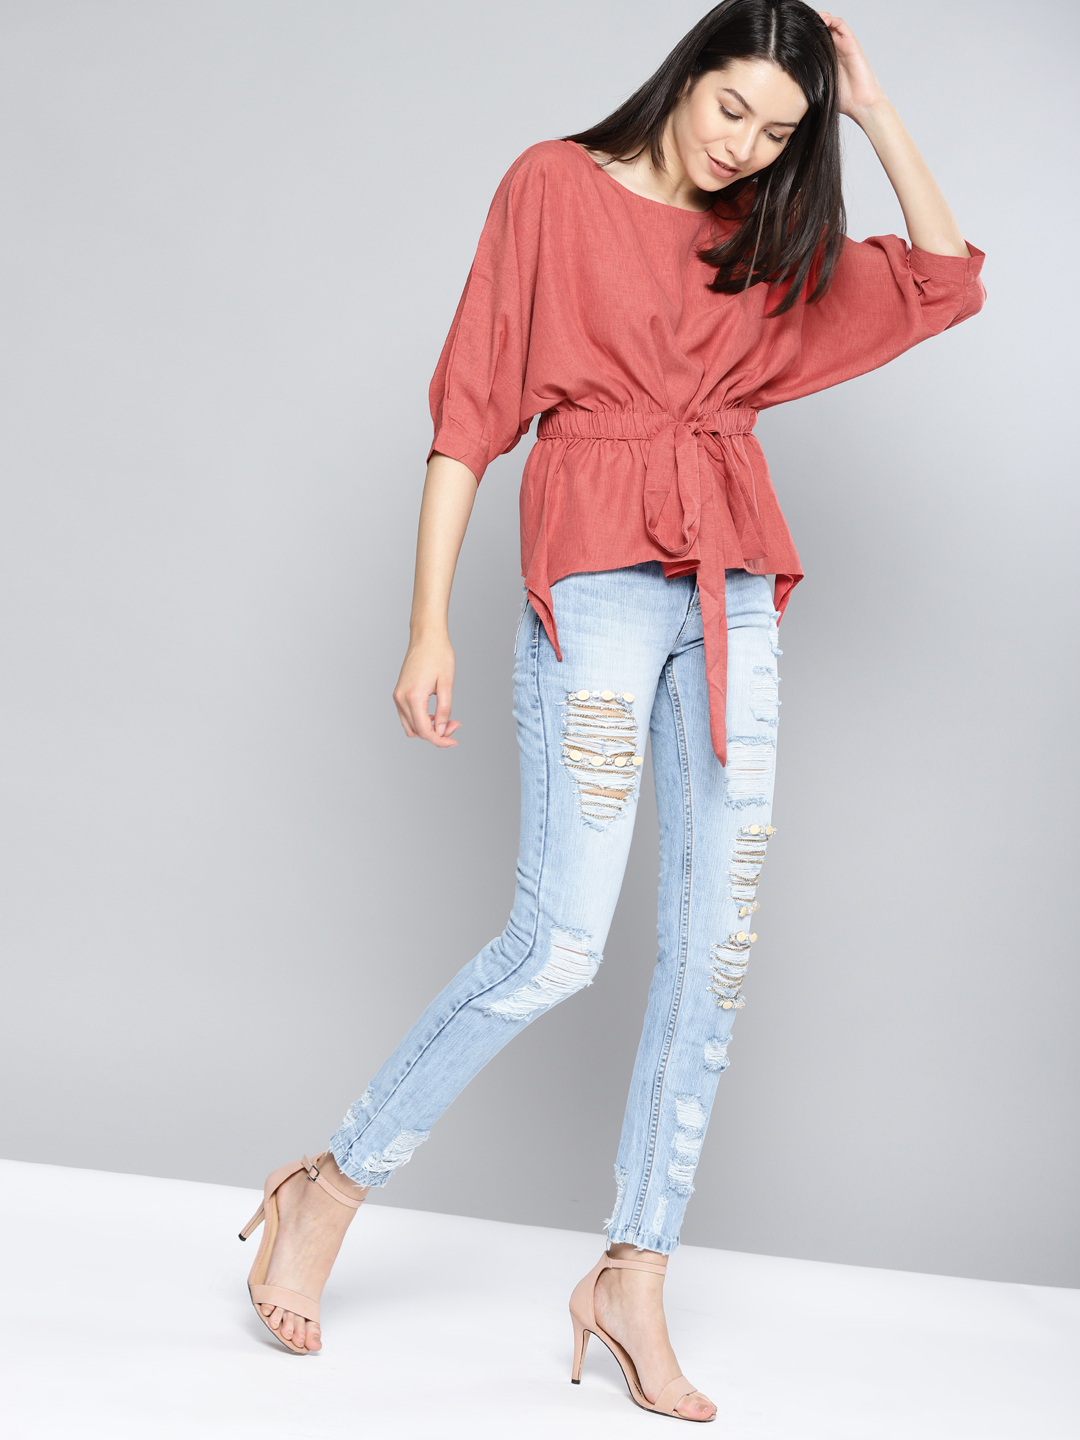 9-types-of-tops-Women-Rust-Red-Solid-Cinched-Waist-Top